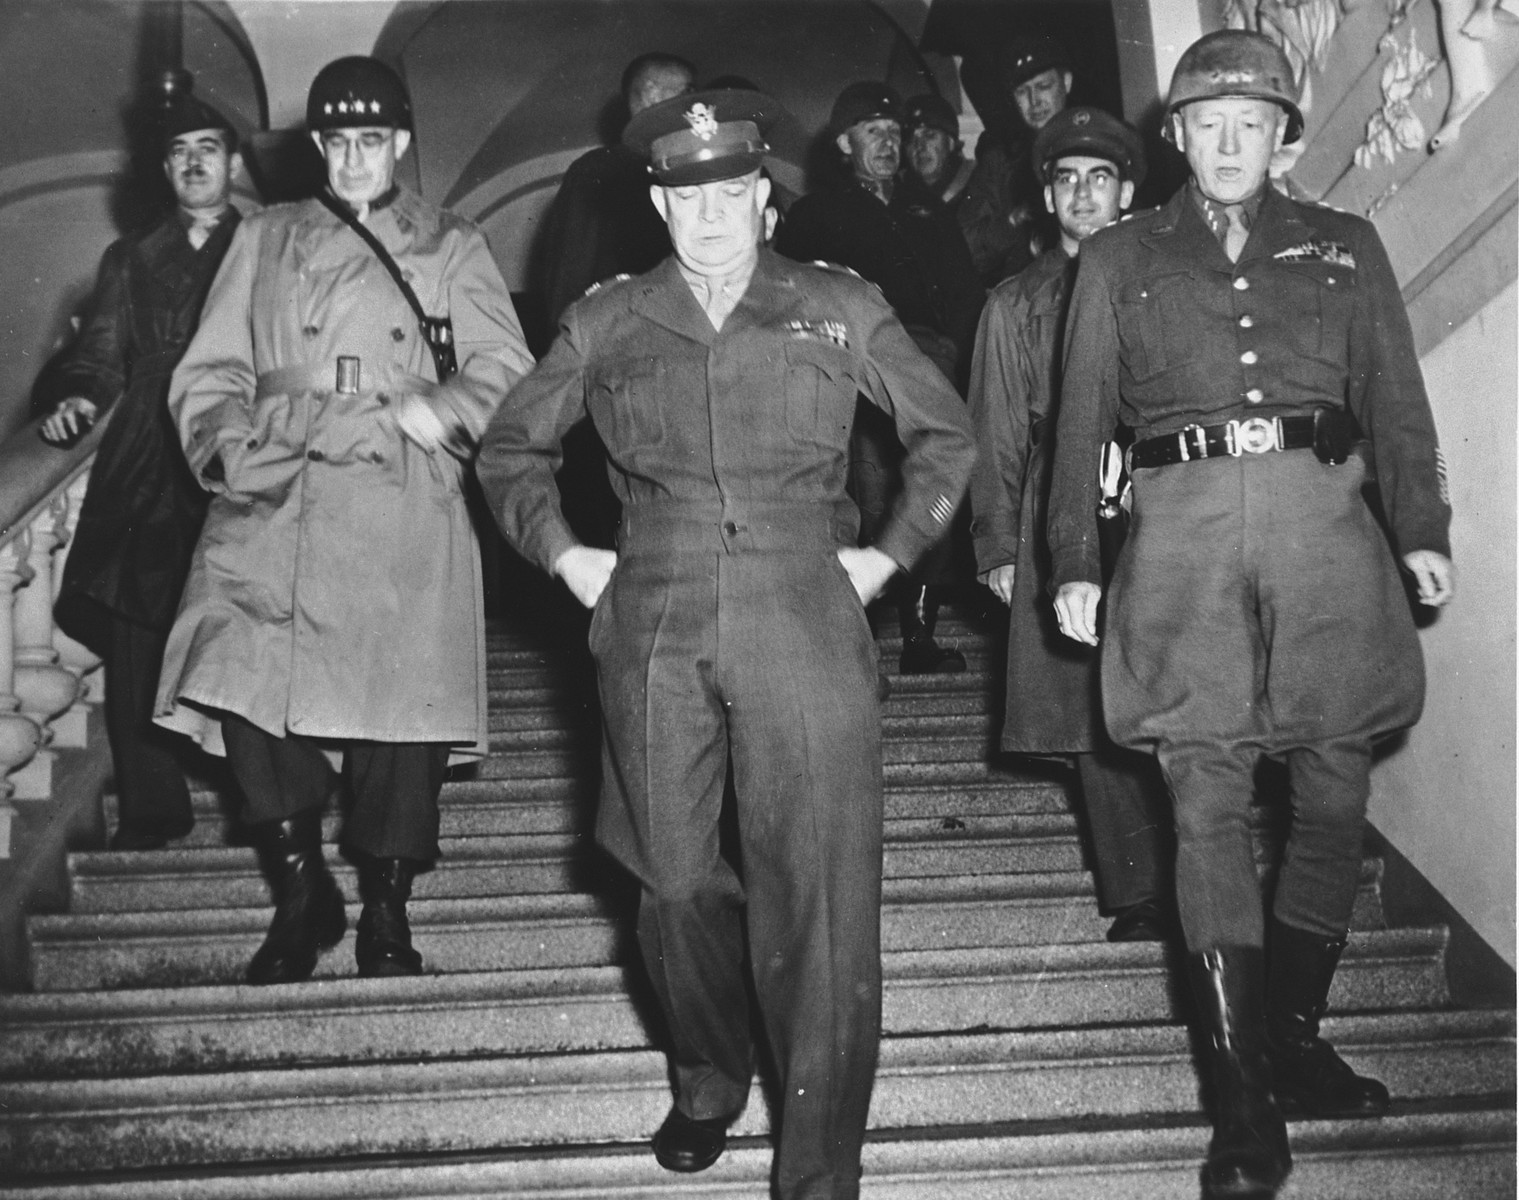 """High-ranking U.S. Army officers descend the stairs at an unidentified army headquarters in Europe.  Pictured from left to right are: Lt. Gen. Omar K. Bradley, Gen. Dwight D. Eisenhower, and Lt. Gen. George S. Patton.  Sgt. Jules Grad, correspondent for the newspaper, """"Stars and Stripes"""", walks behind Patton."""